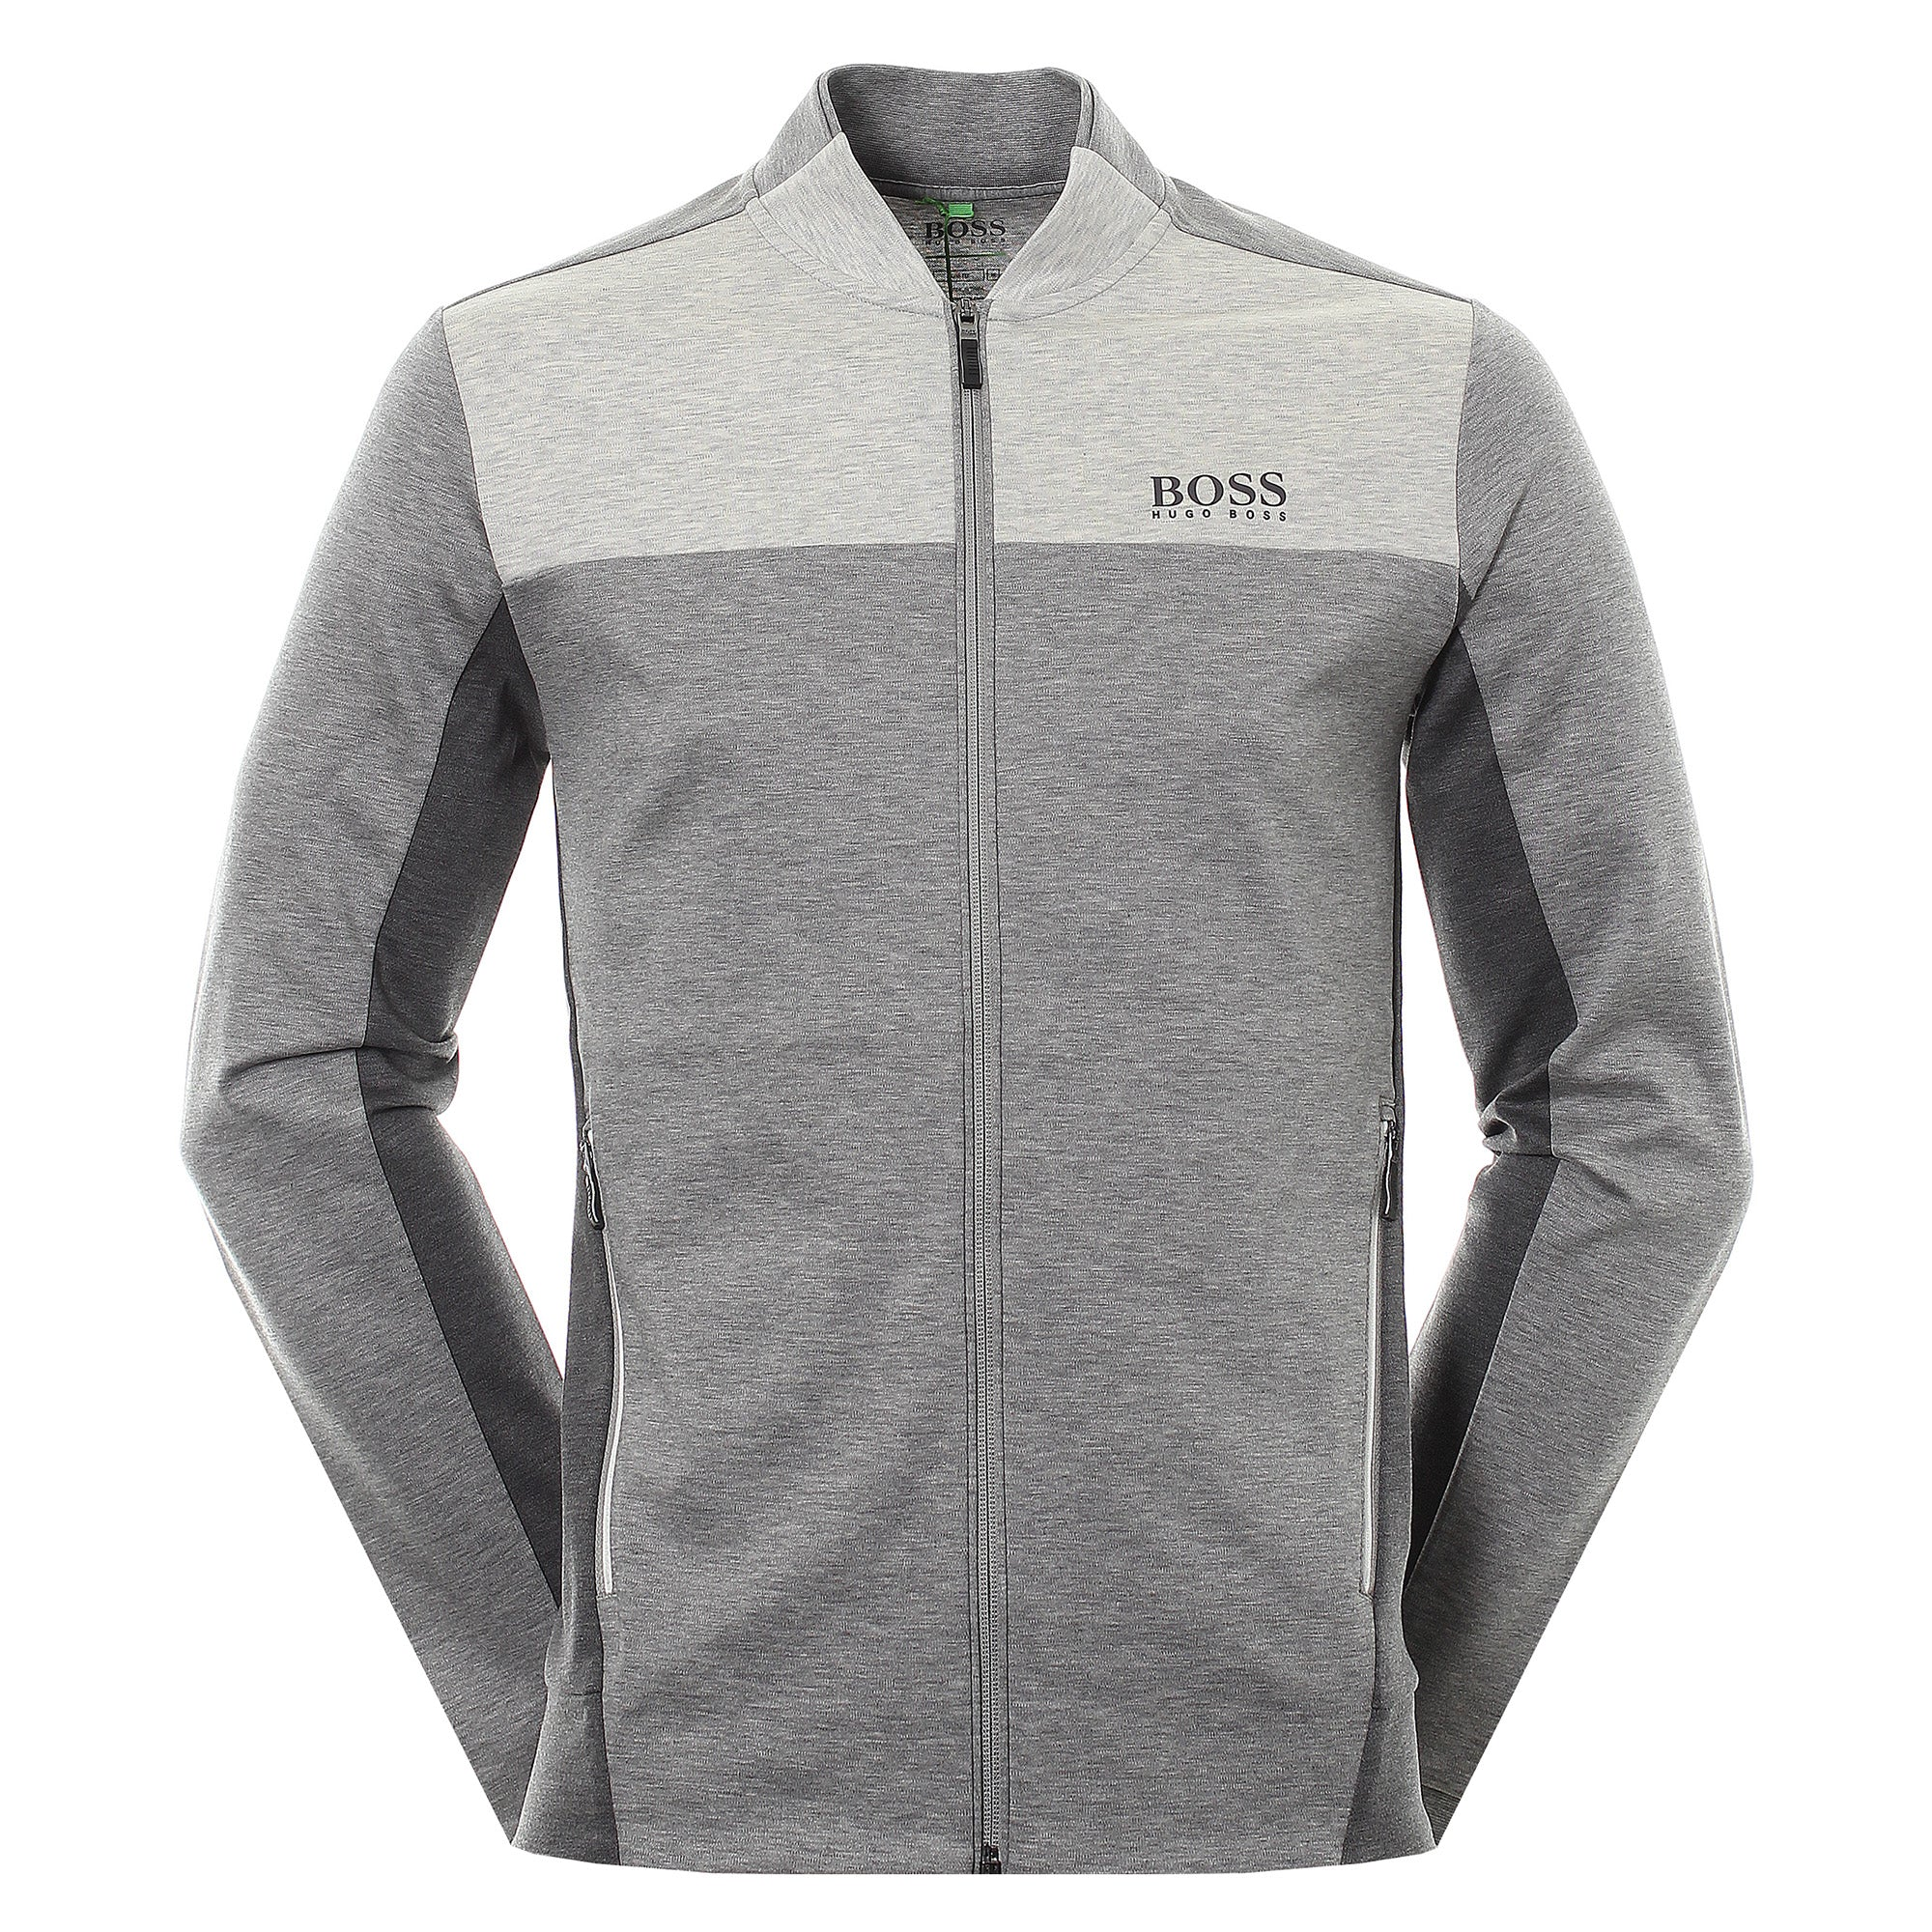 Boss SL-Tech Full Zip Sweater 50399307